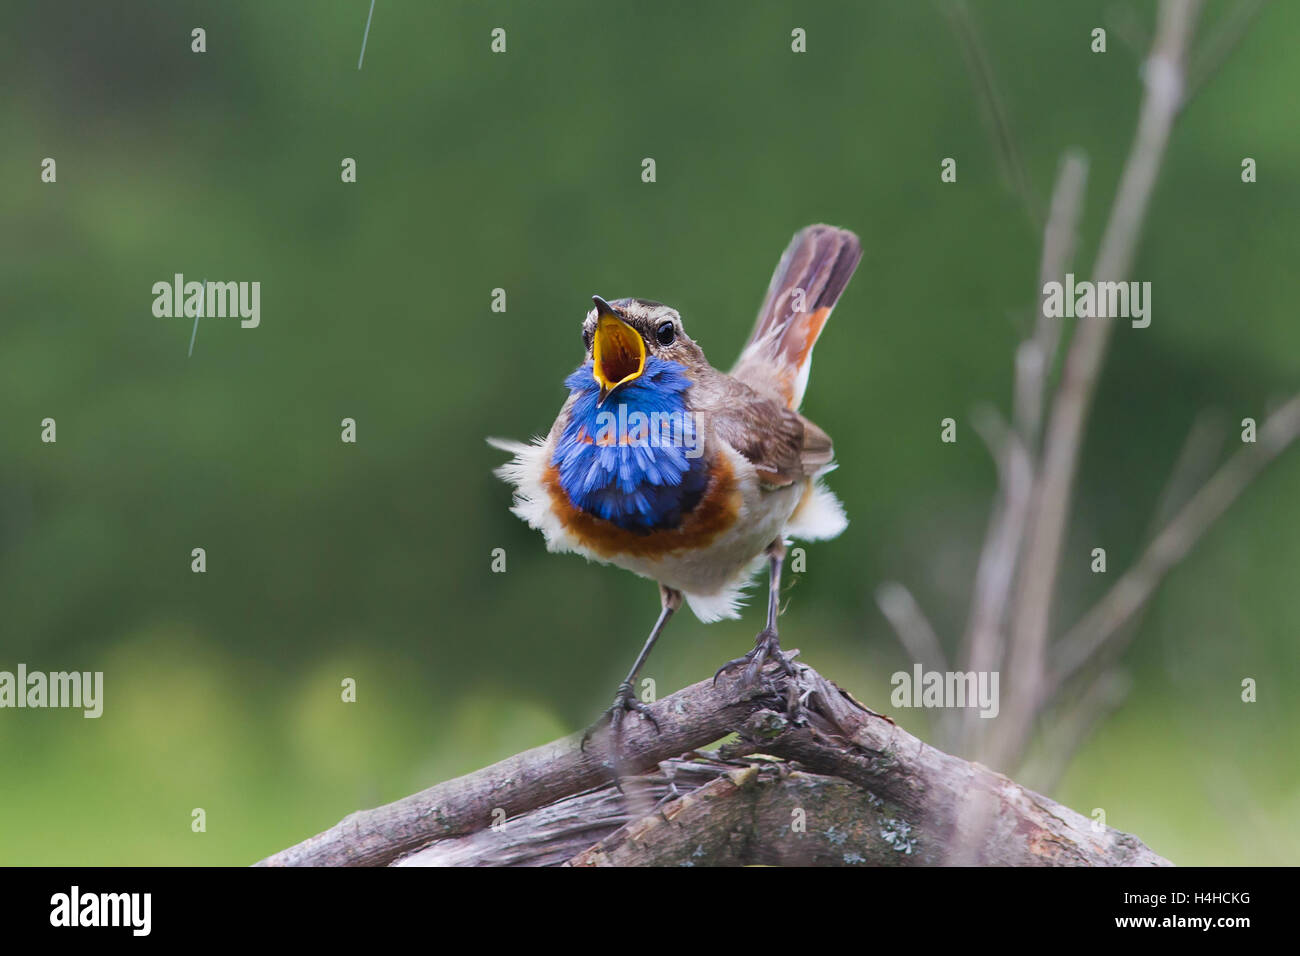 Bird Male Bluethroat Nightingale Blue Feathers To Attract Sings The Song  Beak Rain Nature   Stock